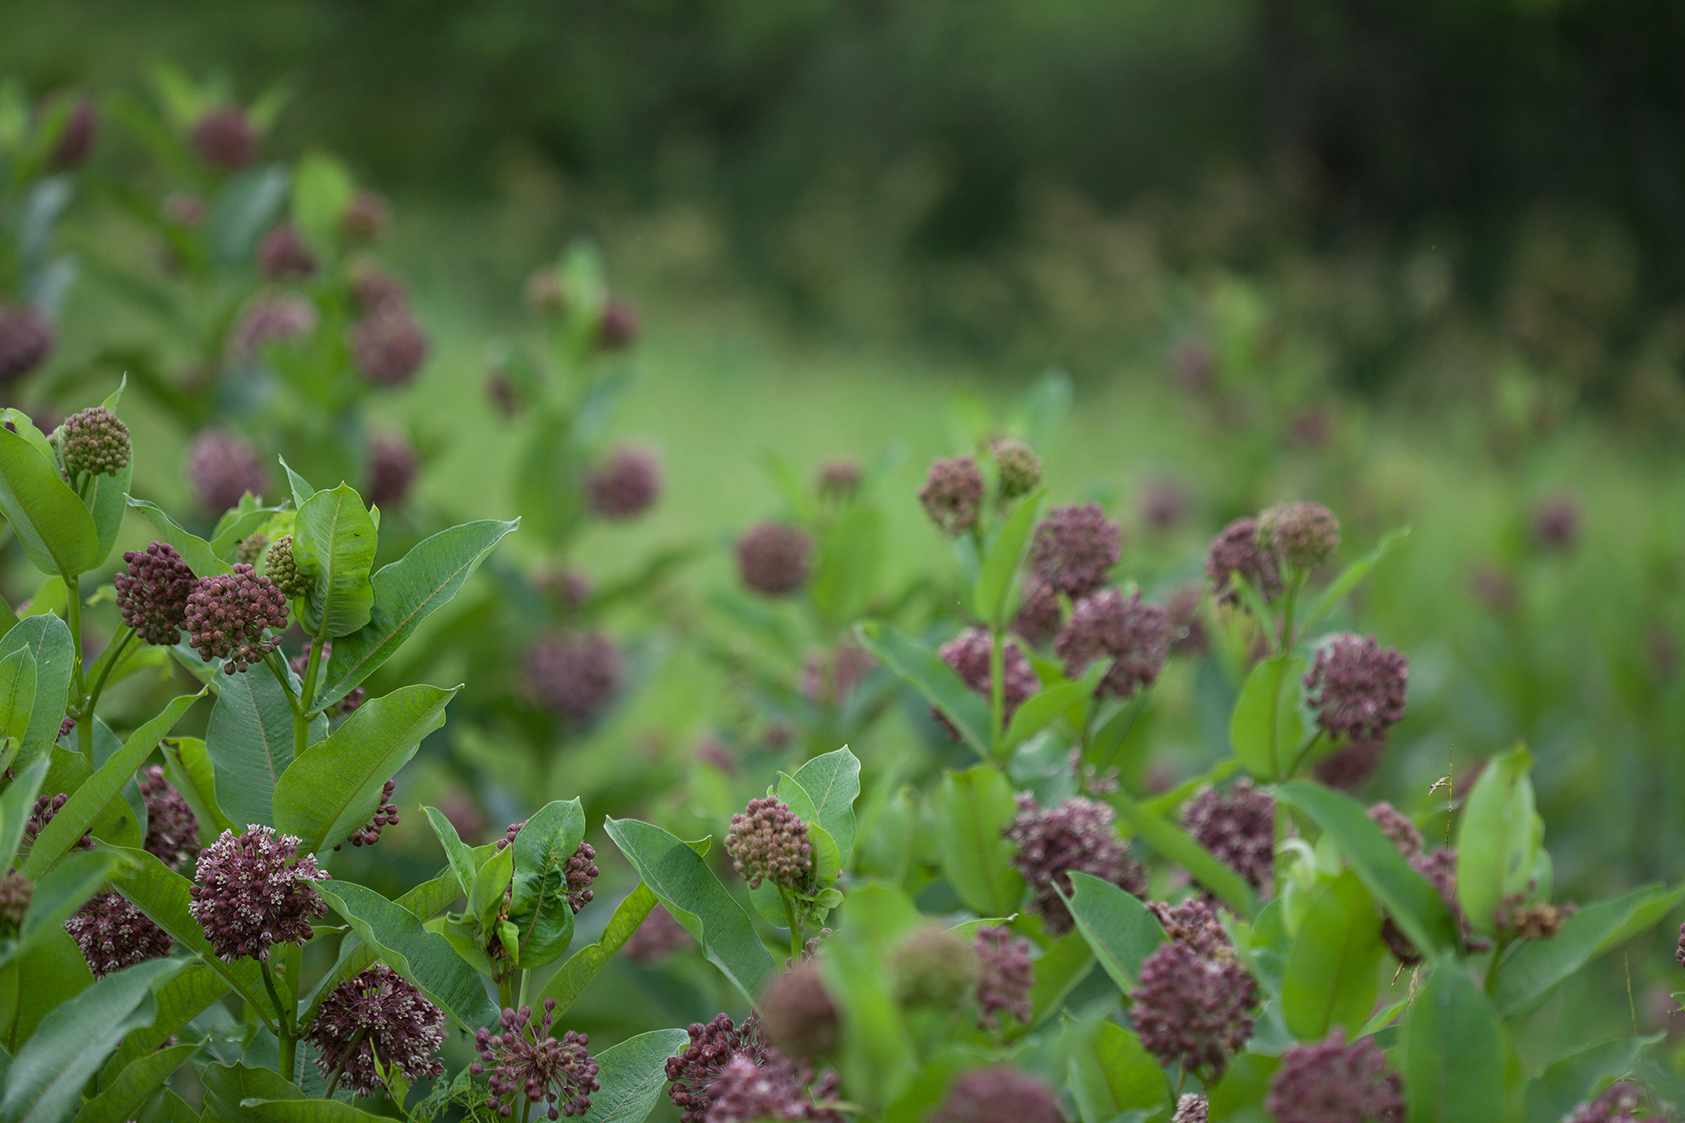 Common milkweed plants growing in the field. (U.S. Fish and Wildlife Service photo)